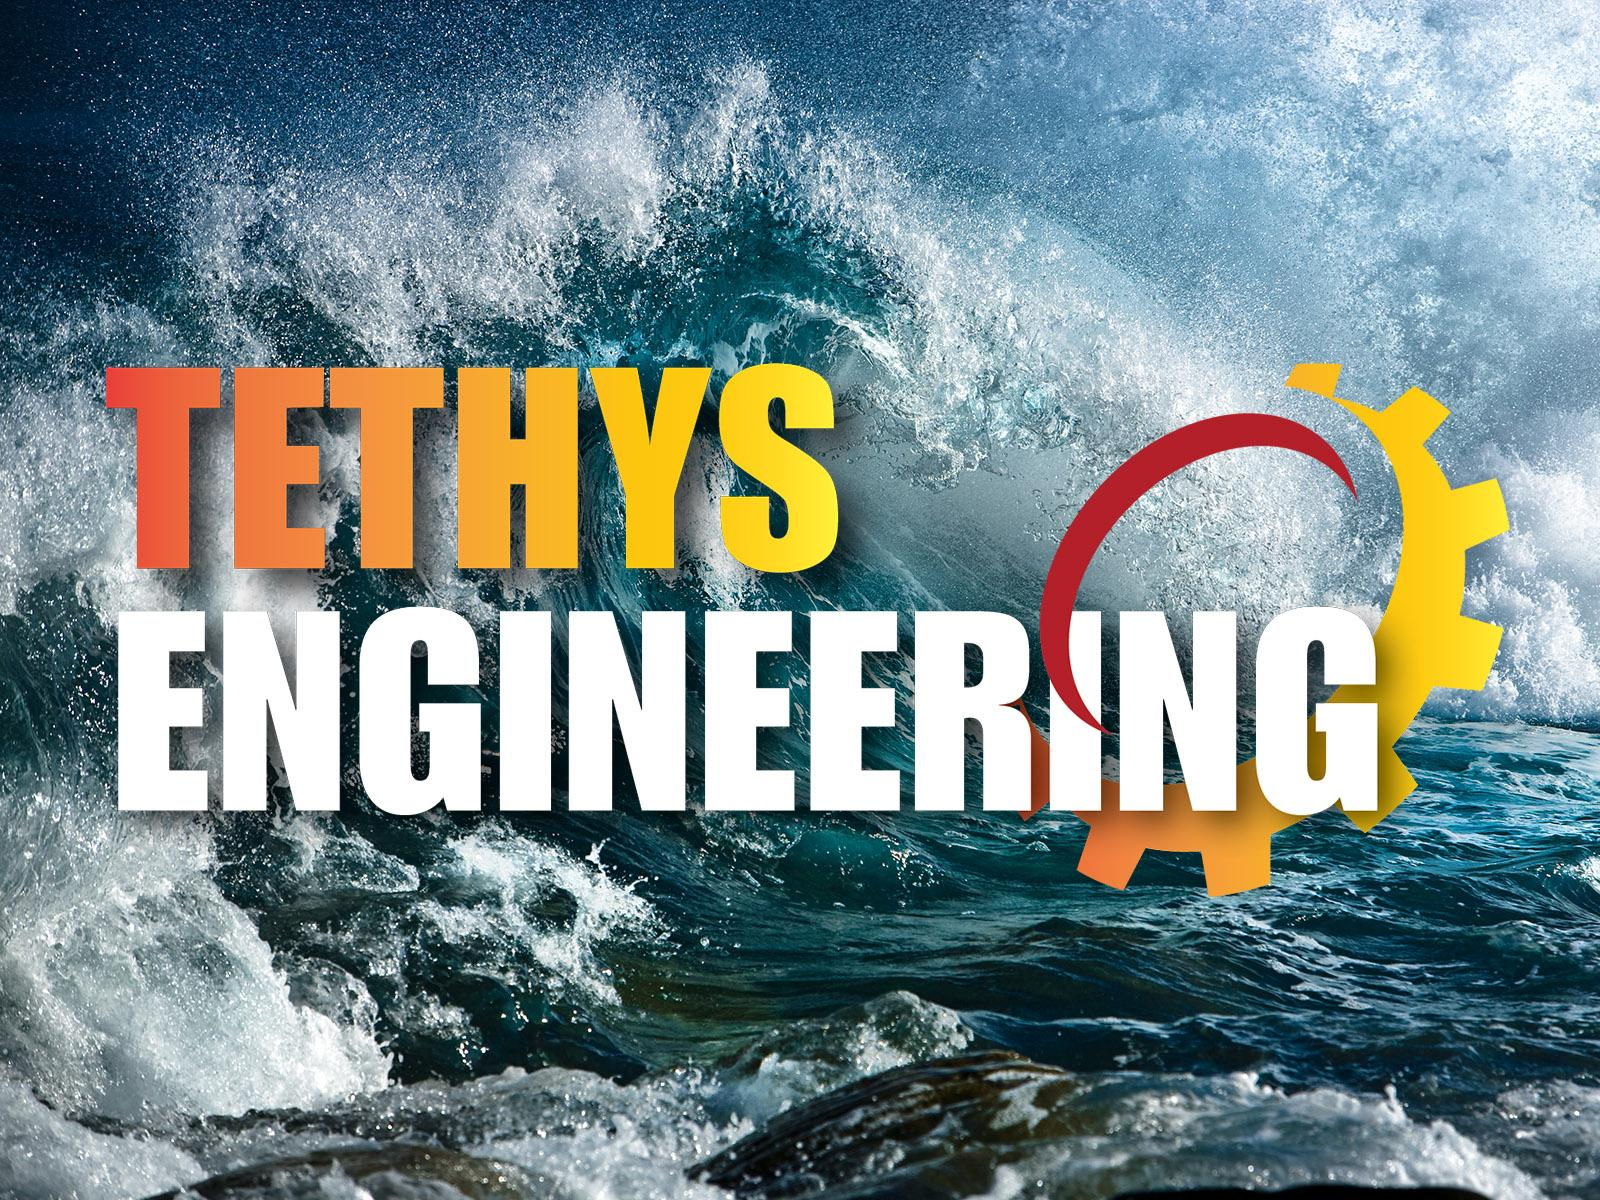 Logo of Tethys Engineering